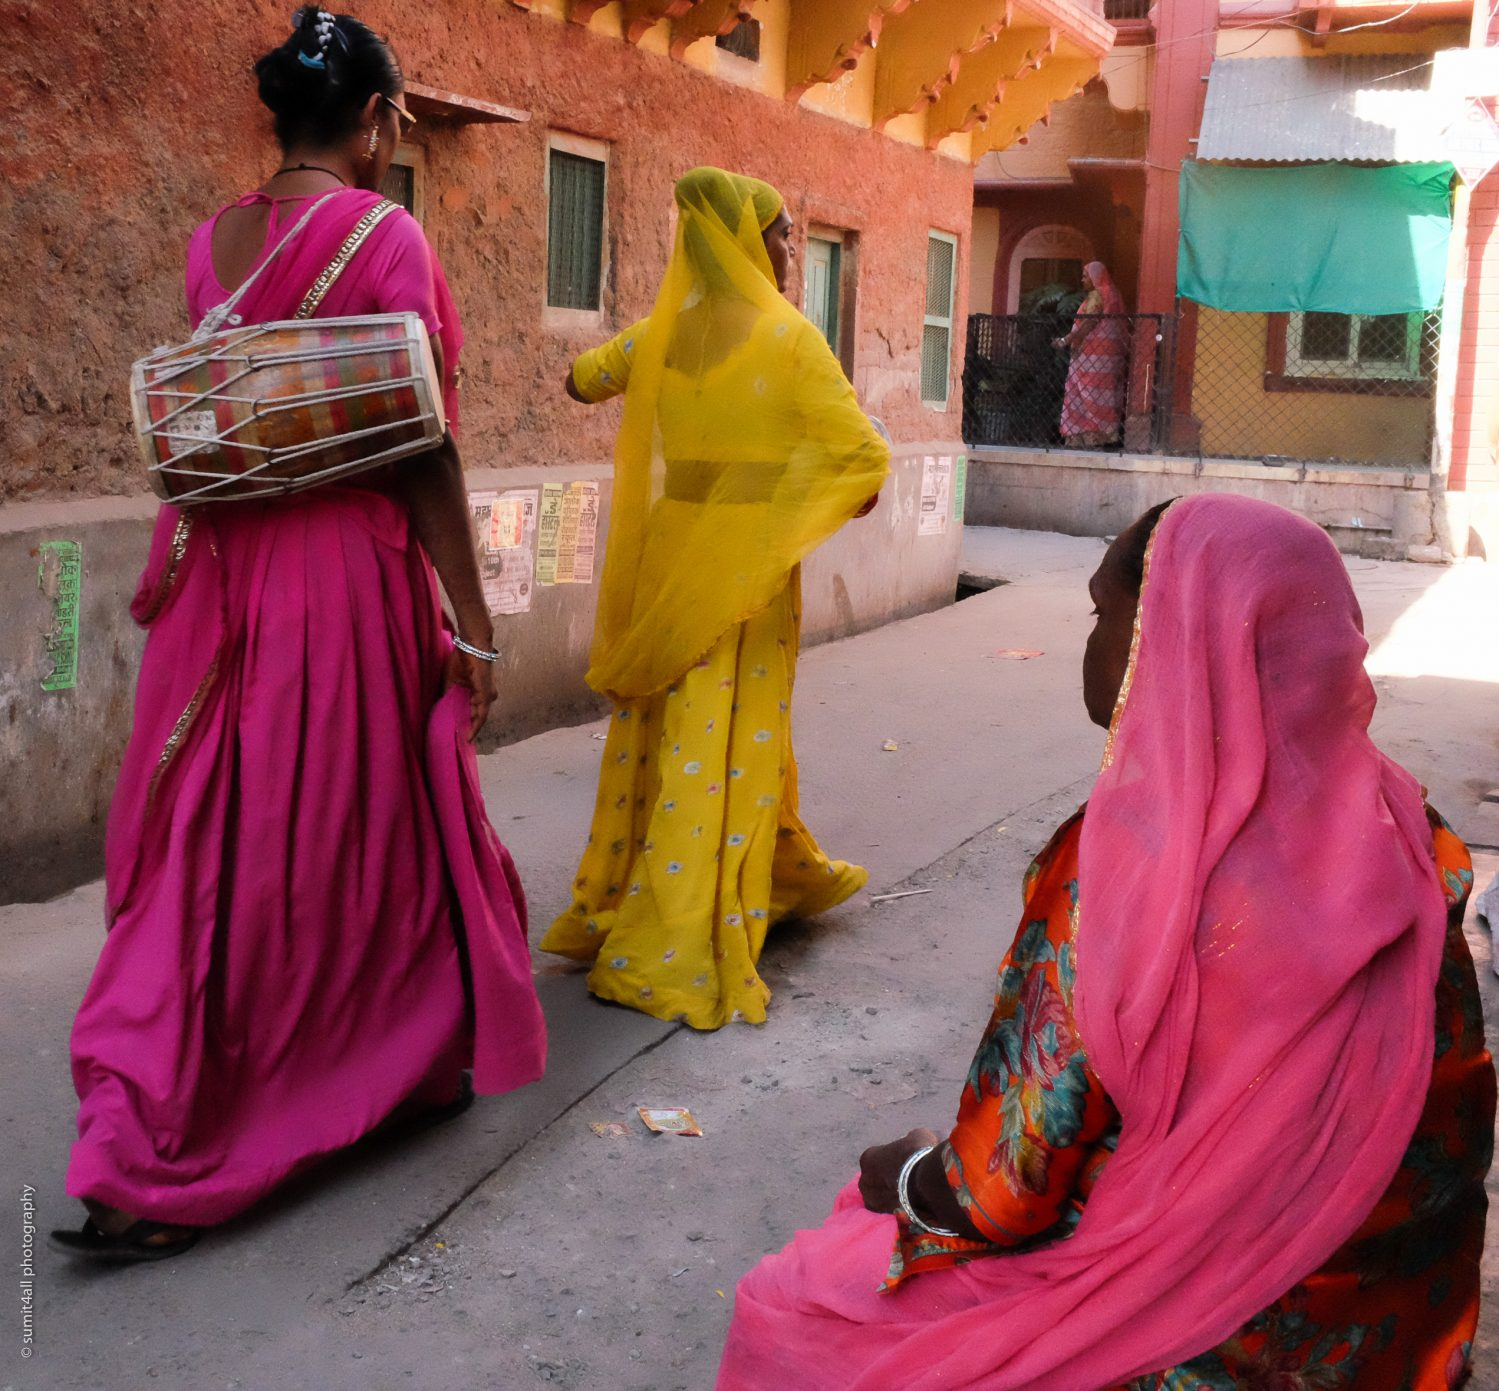 Colorful clothes of local women in Jodhpur, India